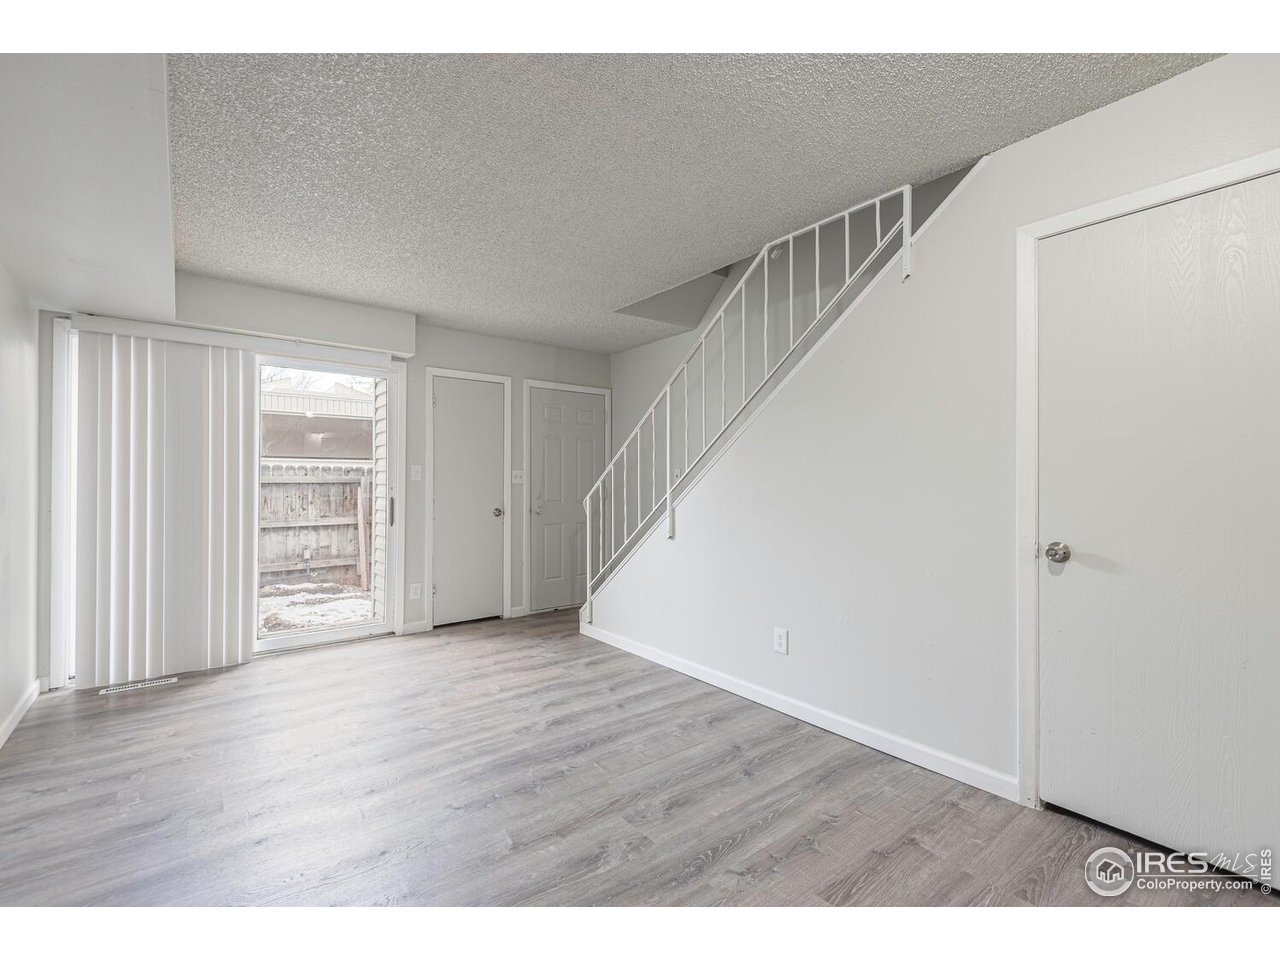 Walk-in closet for additional storage located under the stairs